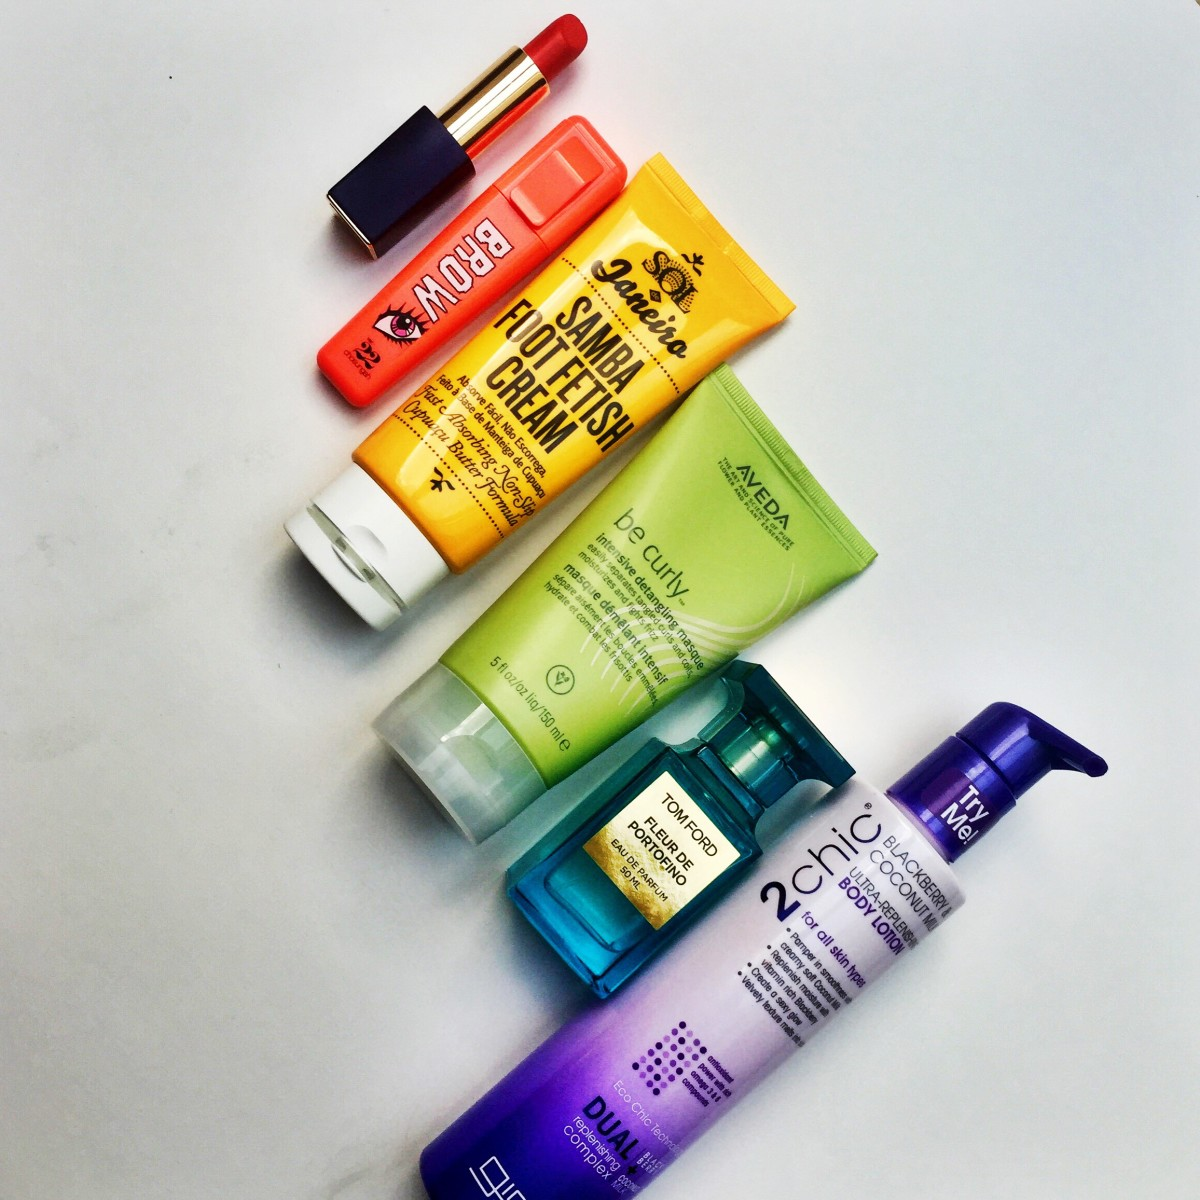 Pride-ready Products